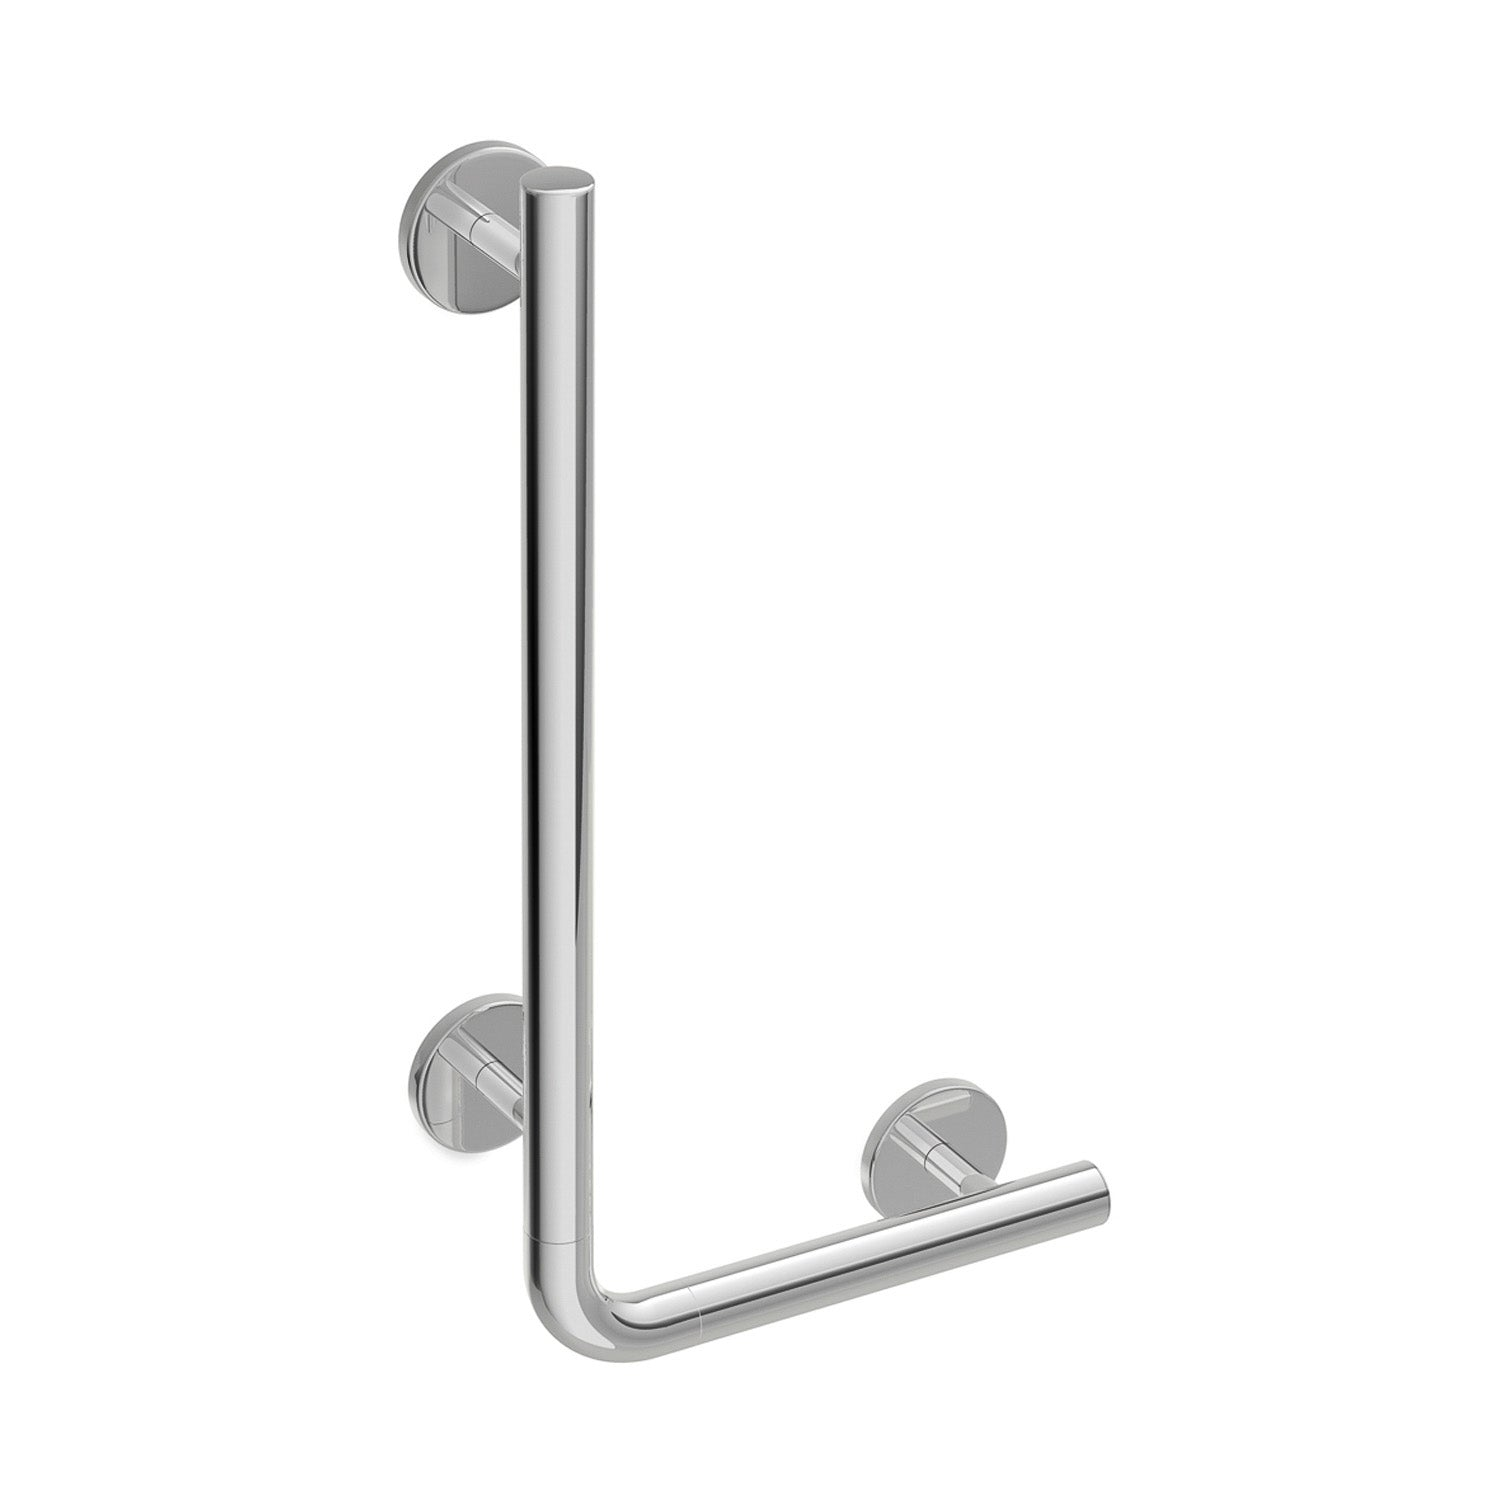 750x500mm Right Handed Circula L Shaped Grab Rail with a chrome look finish on a white background